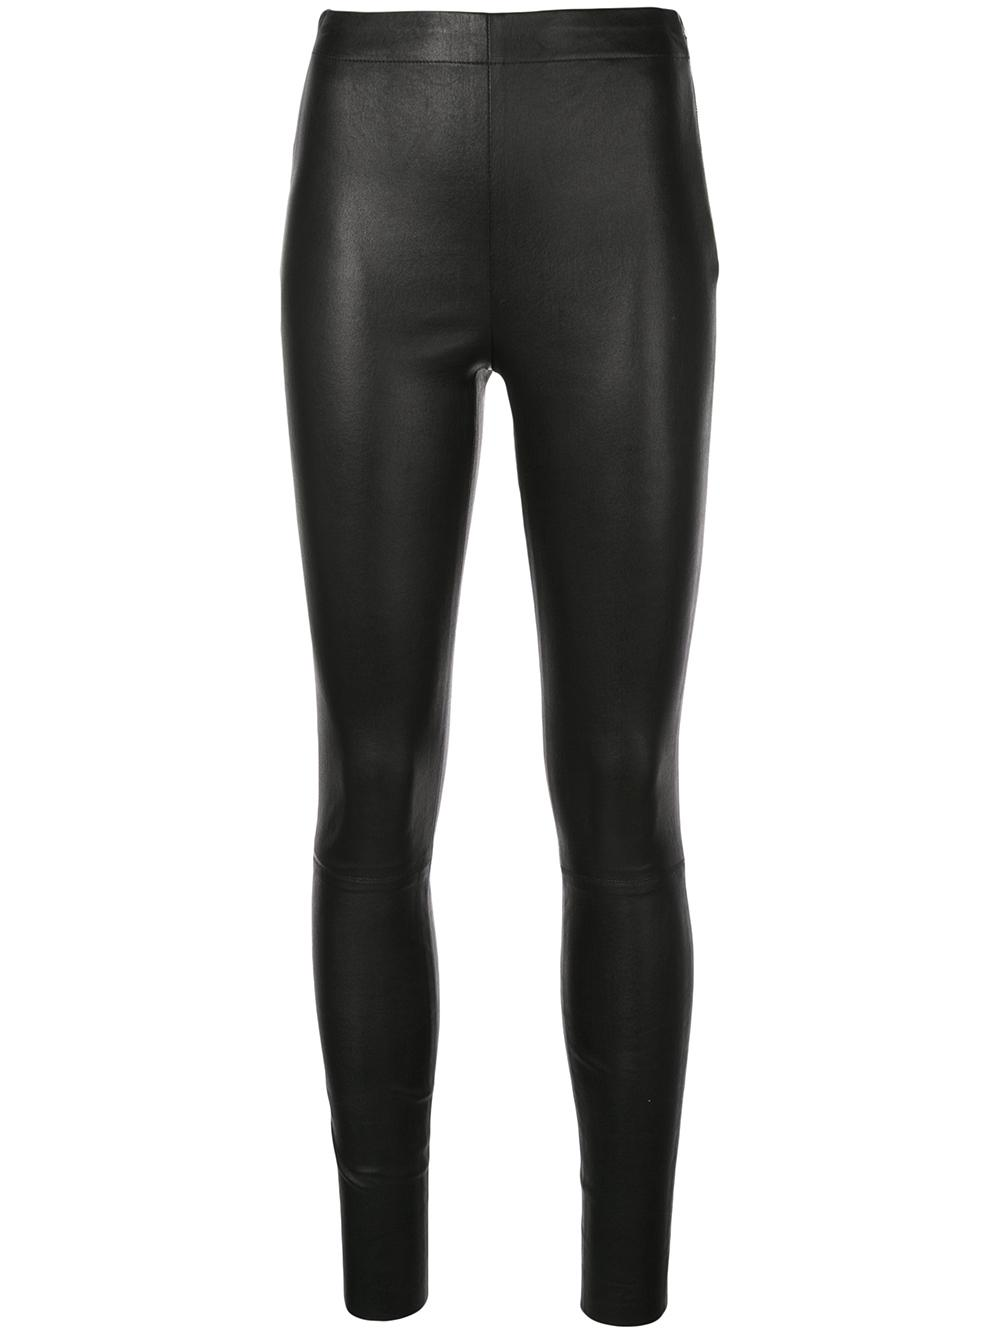 Maddox Leather High Waisted Legging